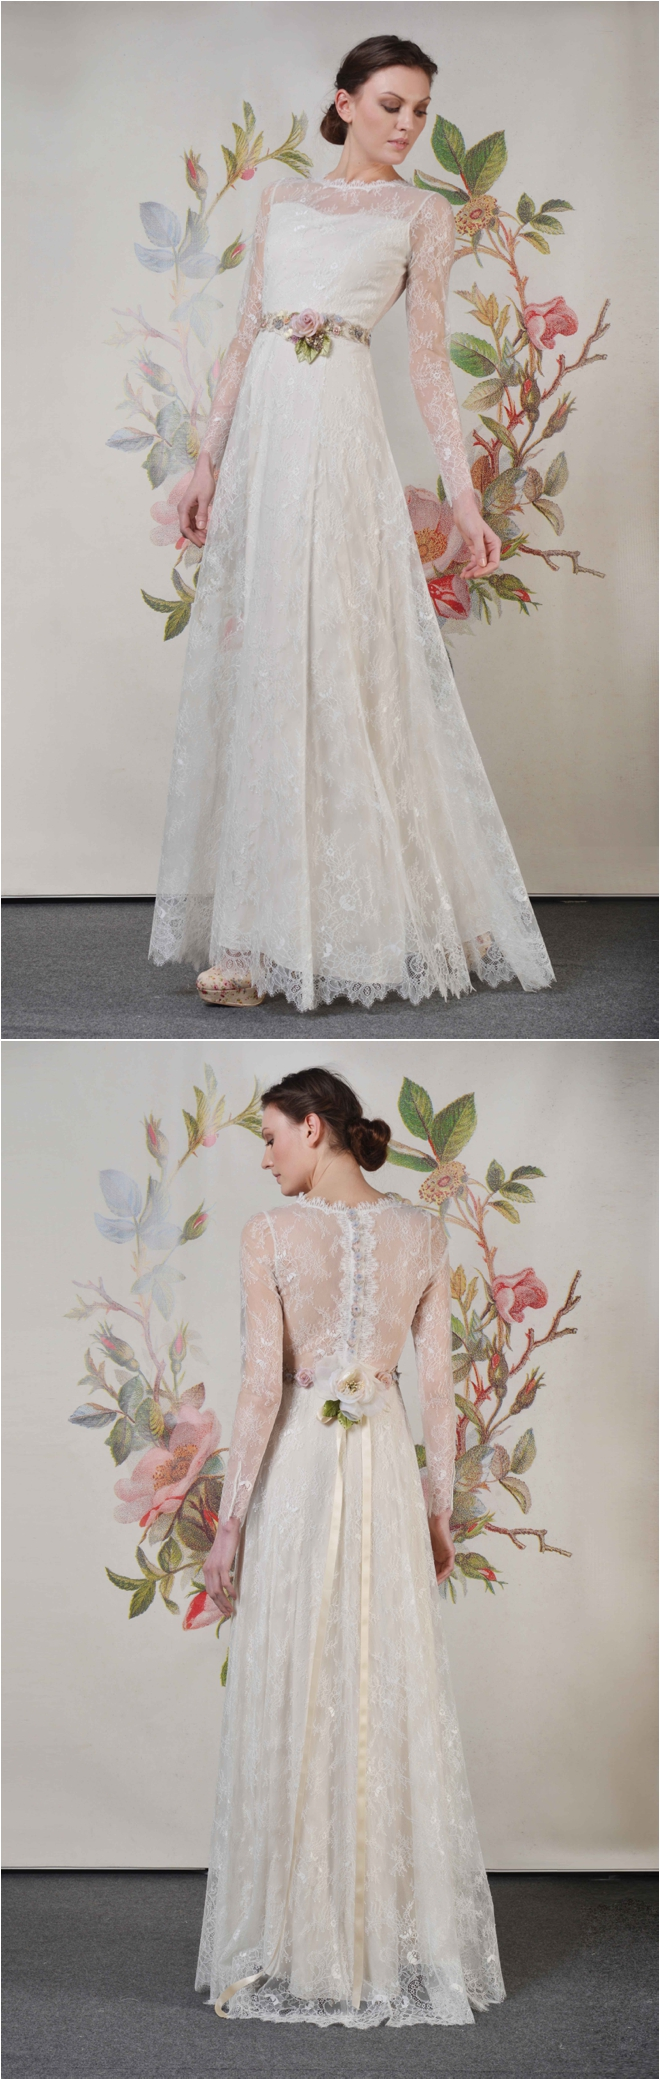 Fairytale Wedding Gowns by Claire Pettibone